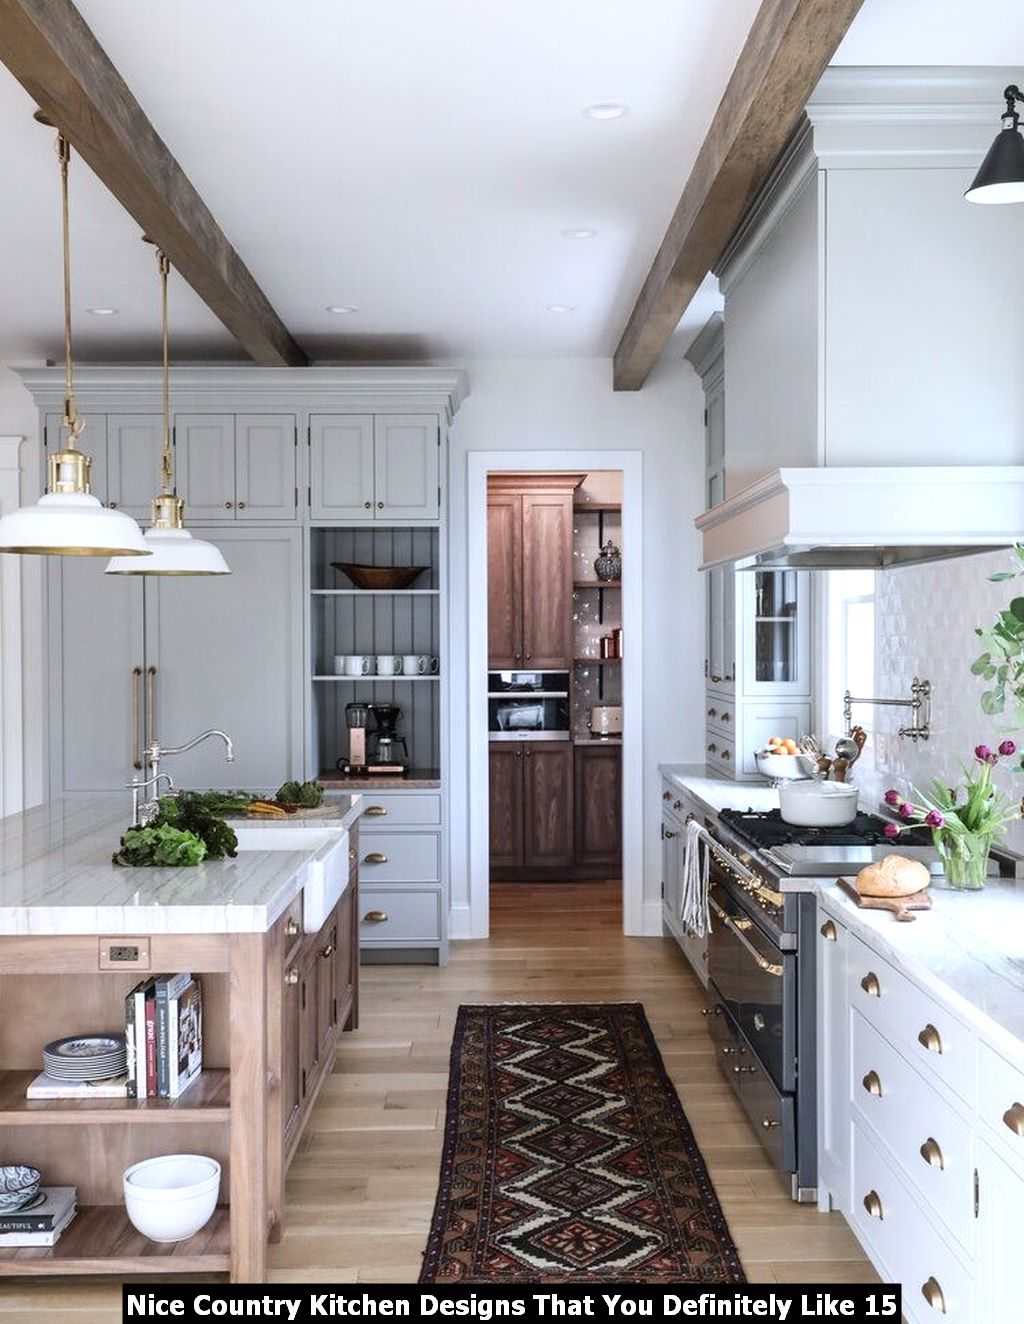 Nice Country Kitchen Designs That You Definitely Like 15